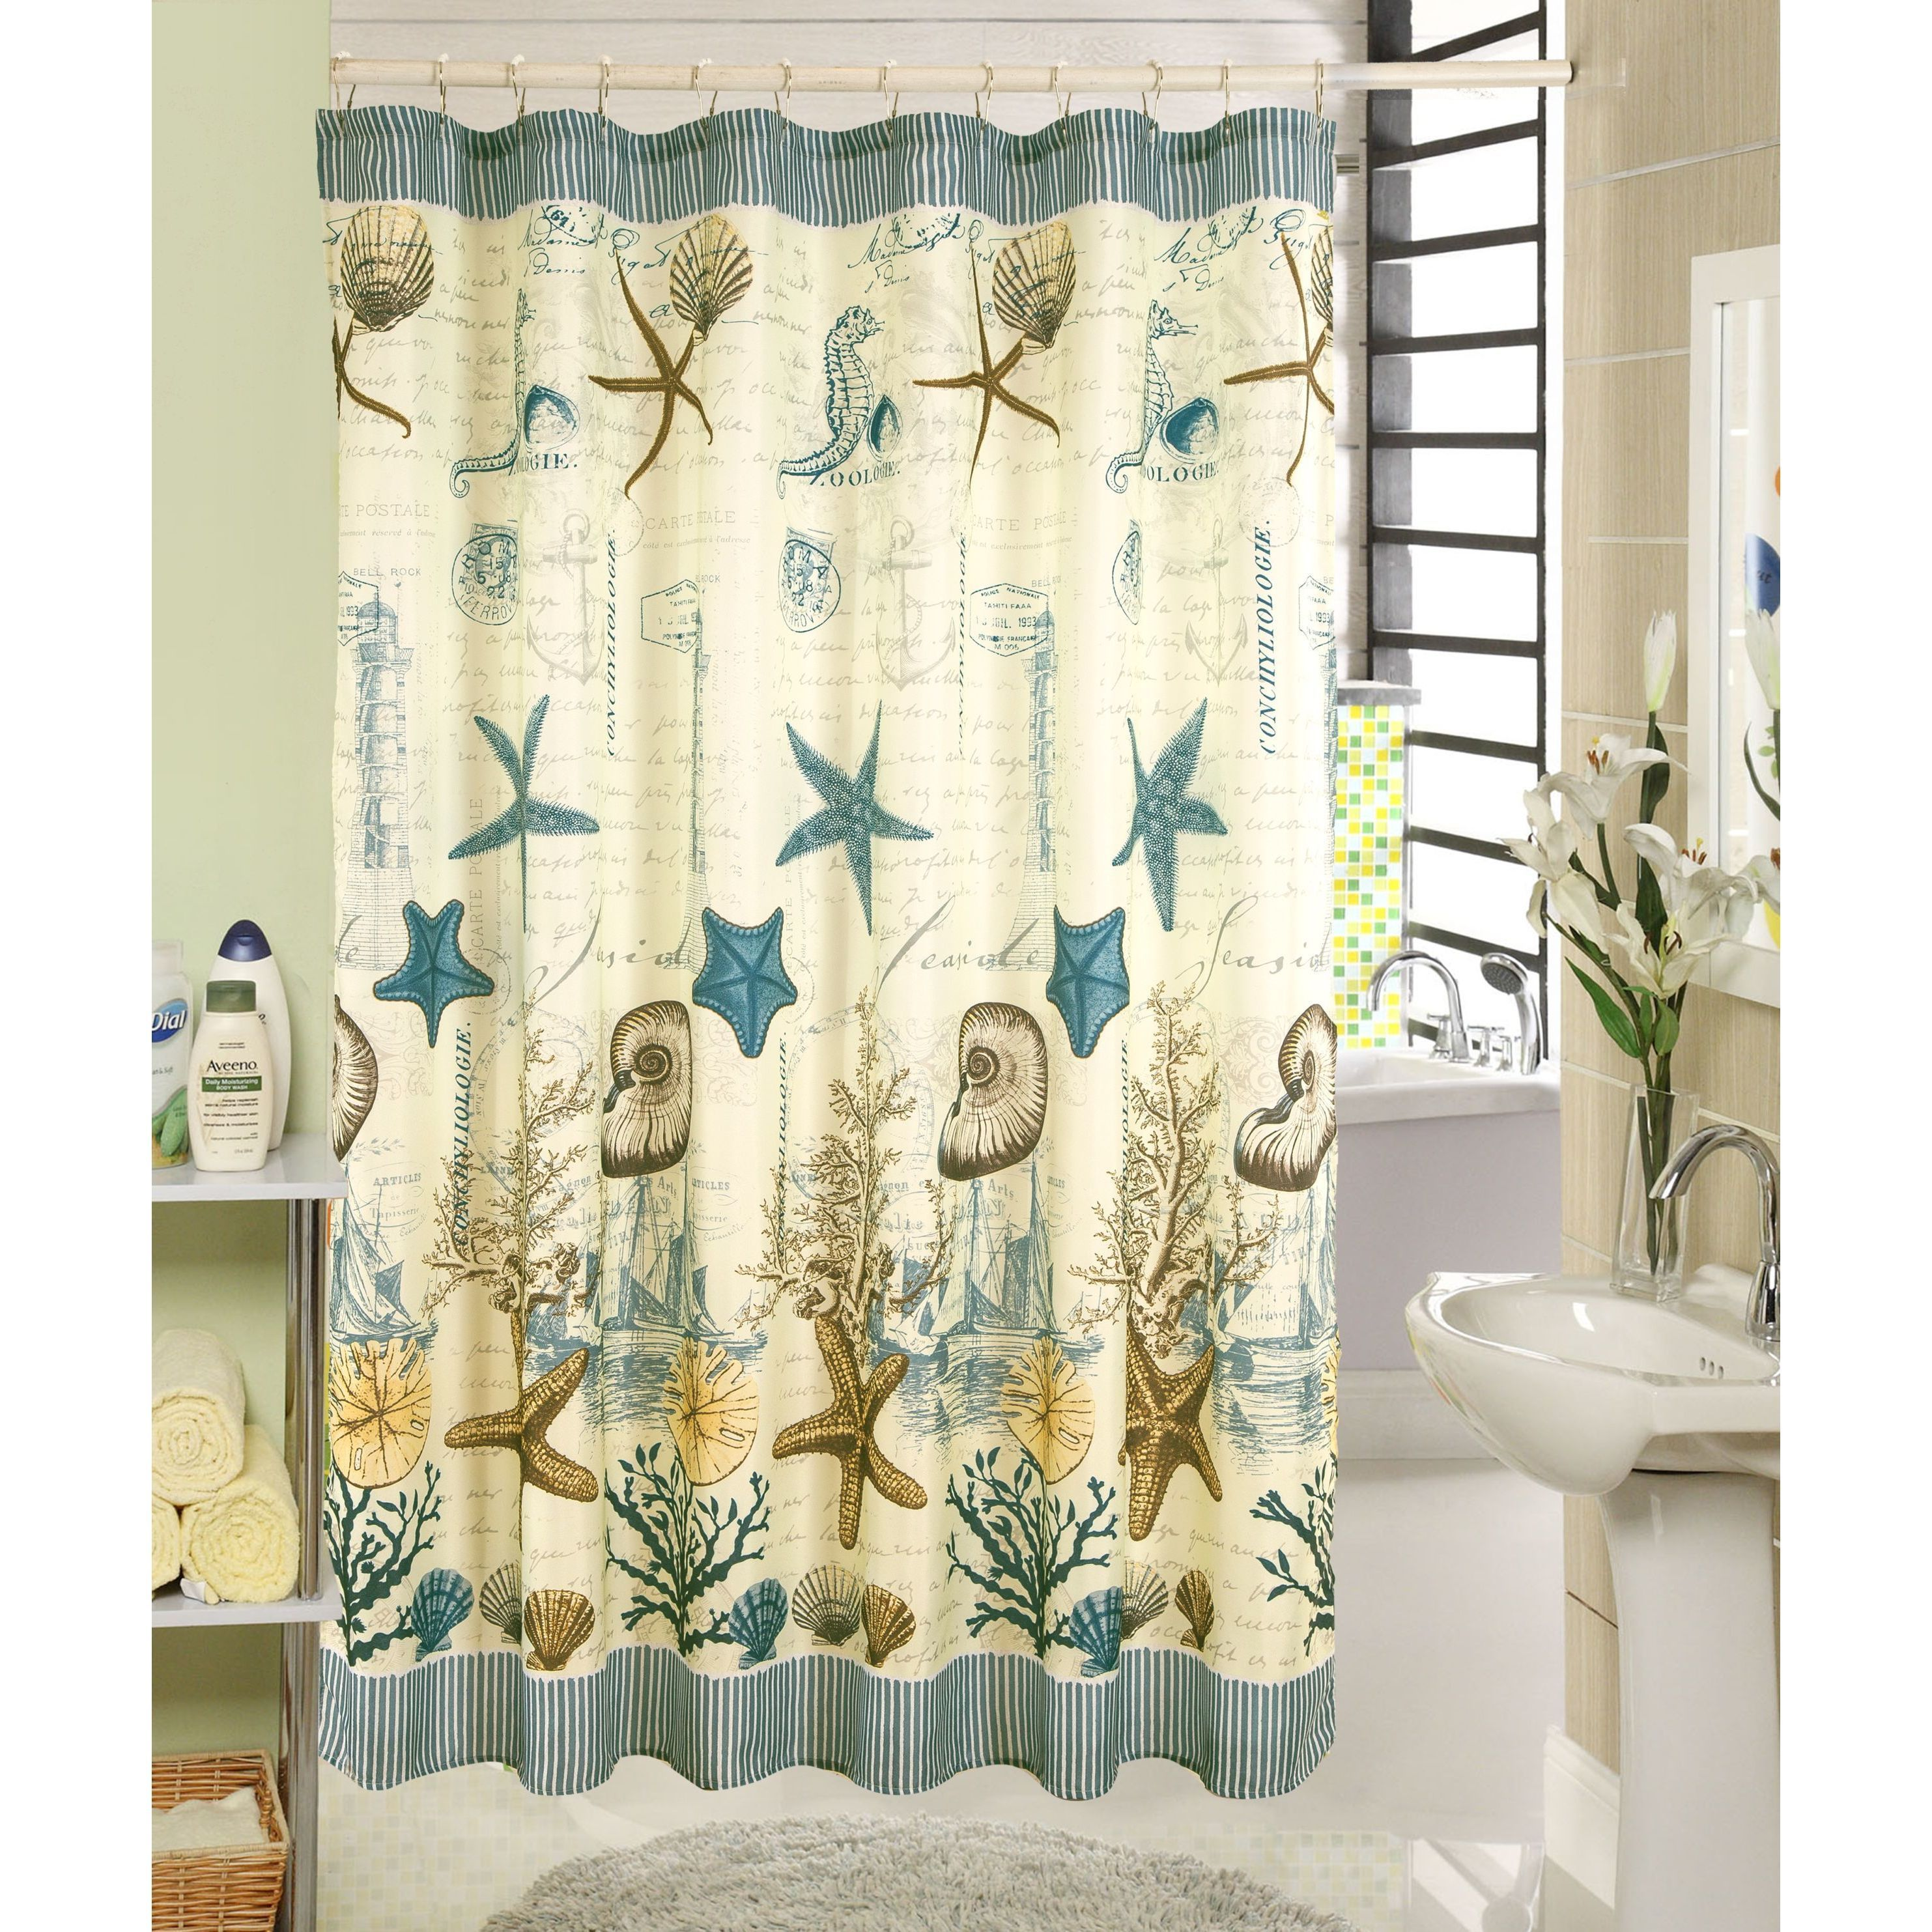 Rt designers collection ocean printed canvas shower curtain and hook